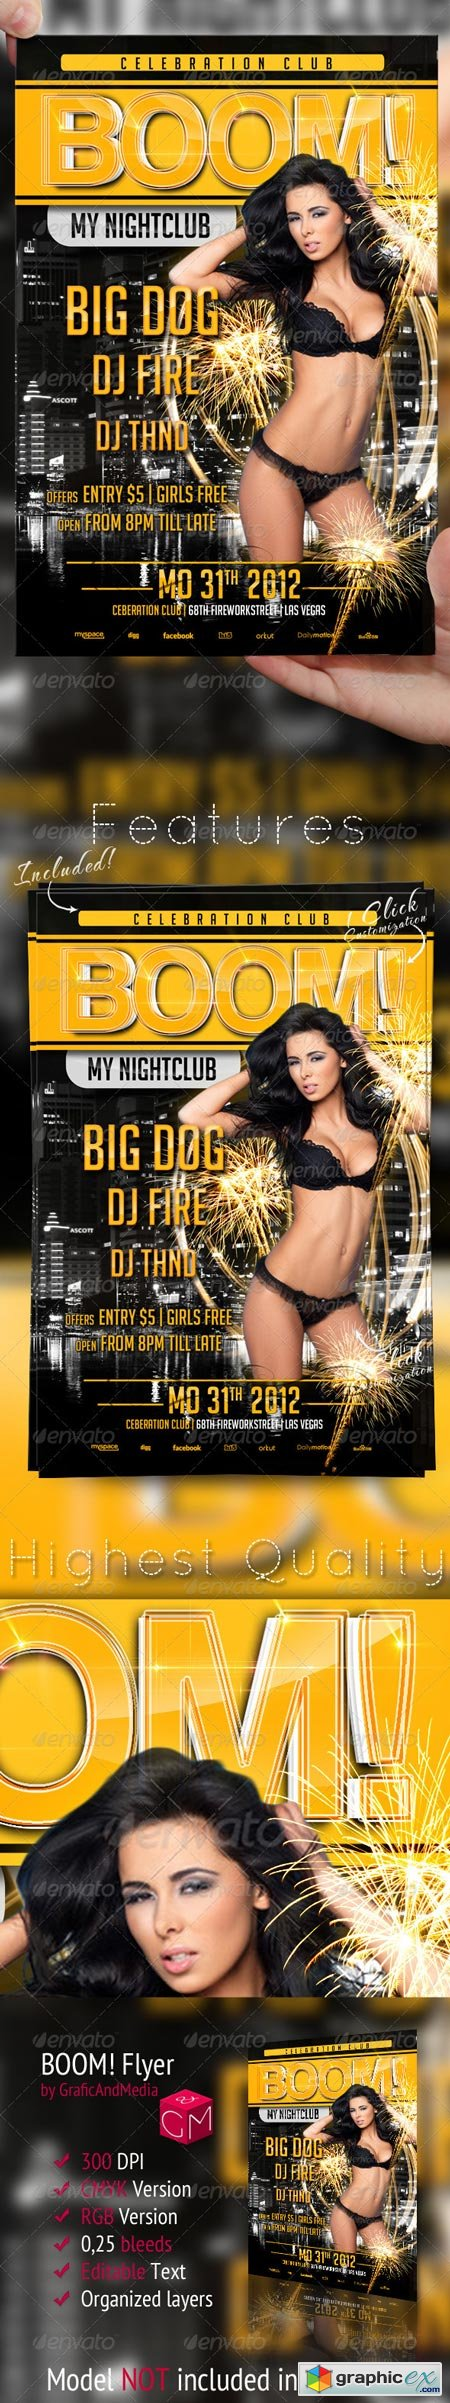 BOOM New Year Flyer Template 3154533